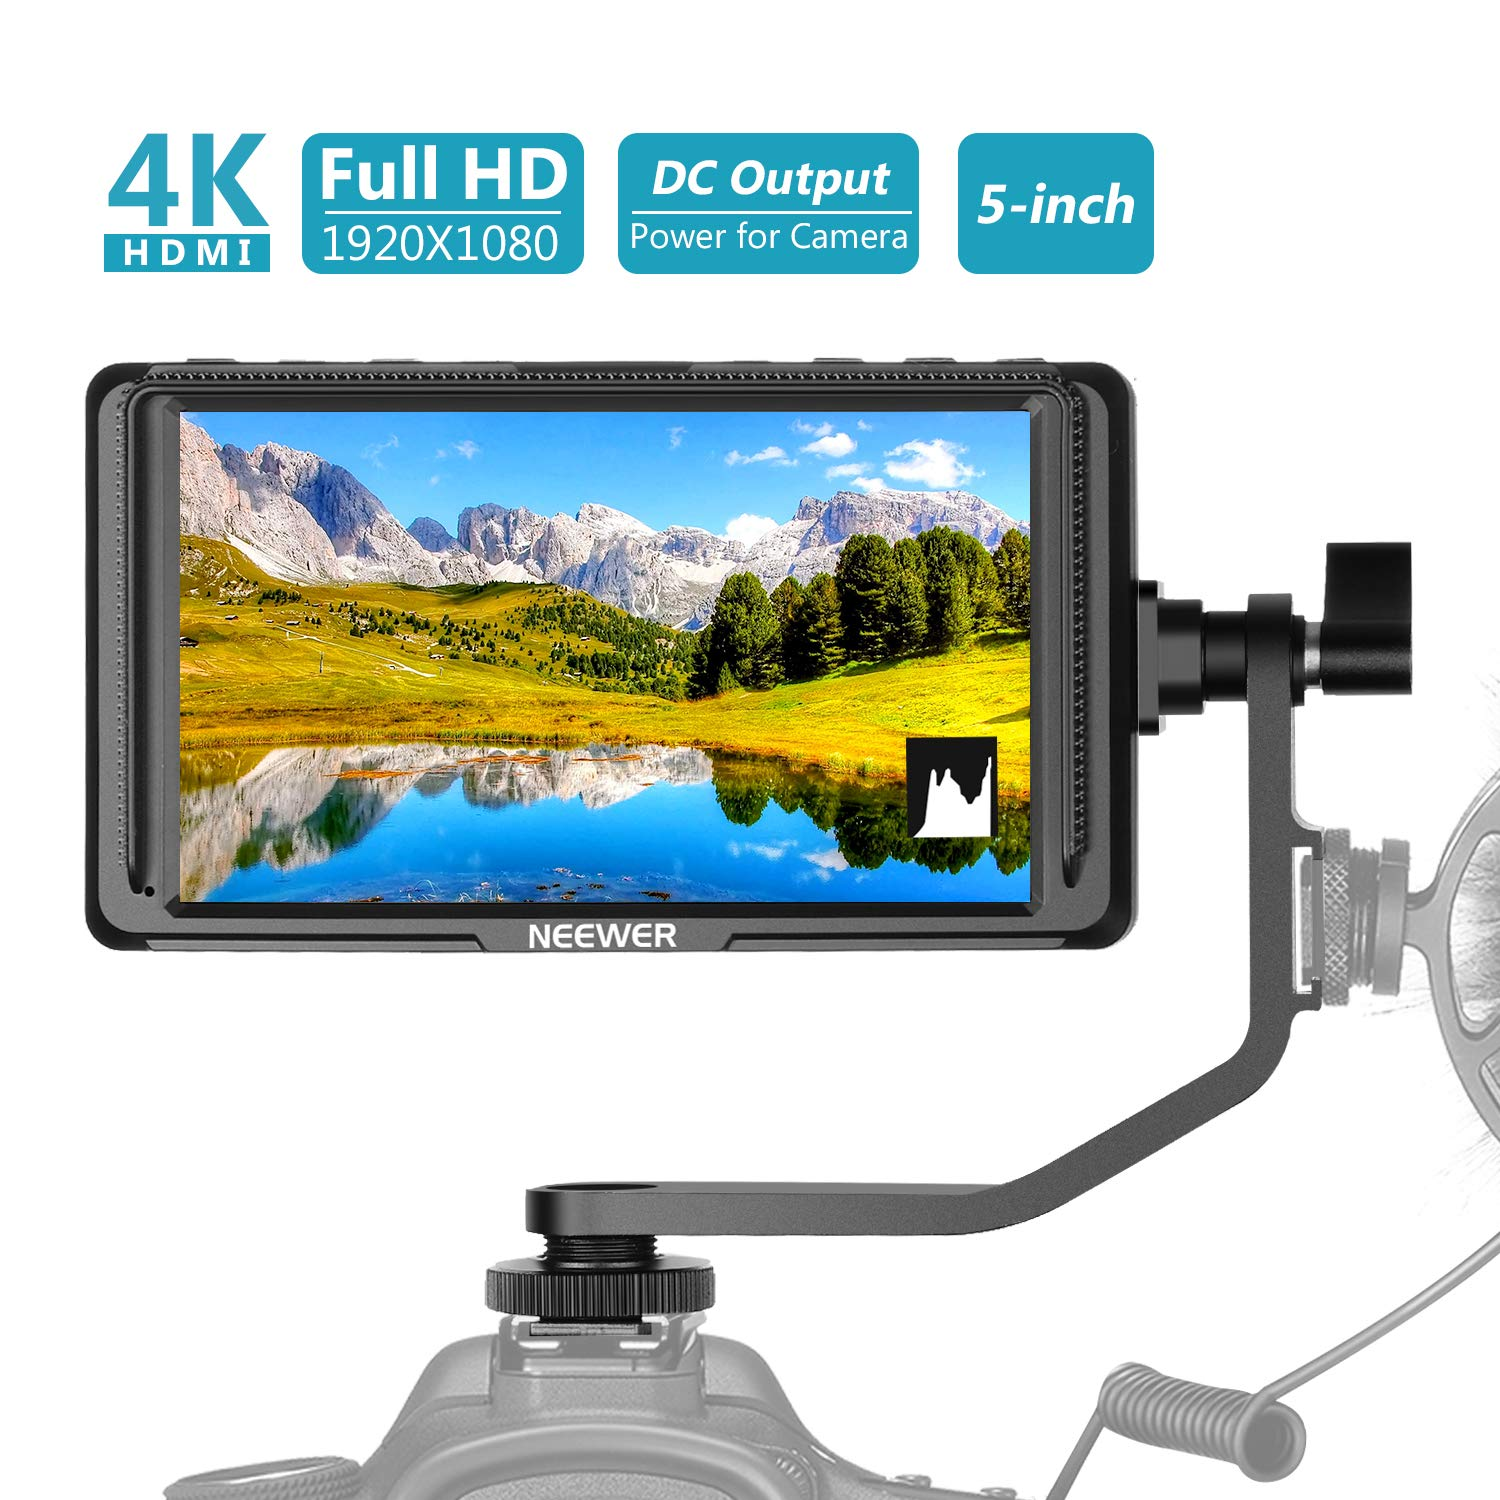 Neewer F5 5-Inch Camera Field Monitor Full HD 1920x1080 IPS with 4K HDMI 8.4V DC Input Output Video Peaking Focus Assist with Swivel Arm for Sony Nikon Canon DSLRs and Gimbals (Battery Not Included) by Neewer